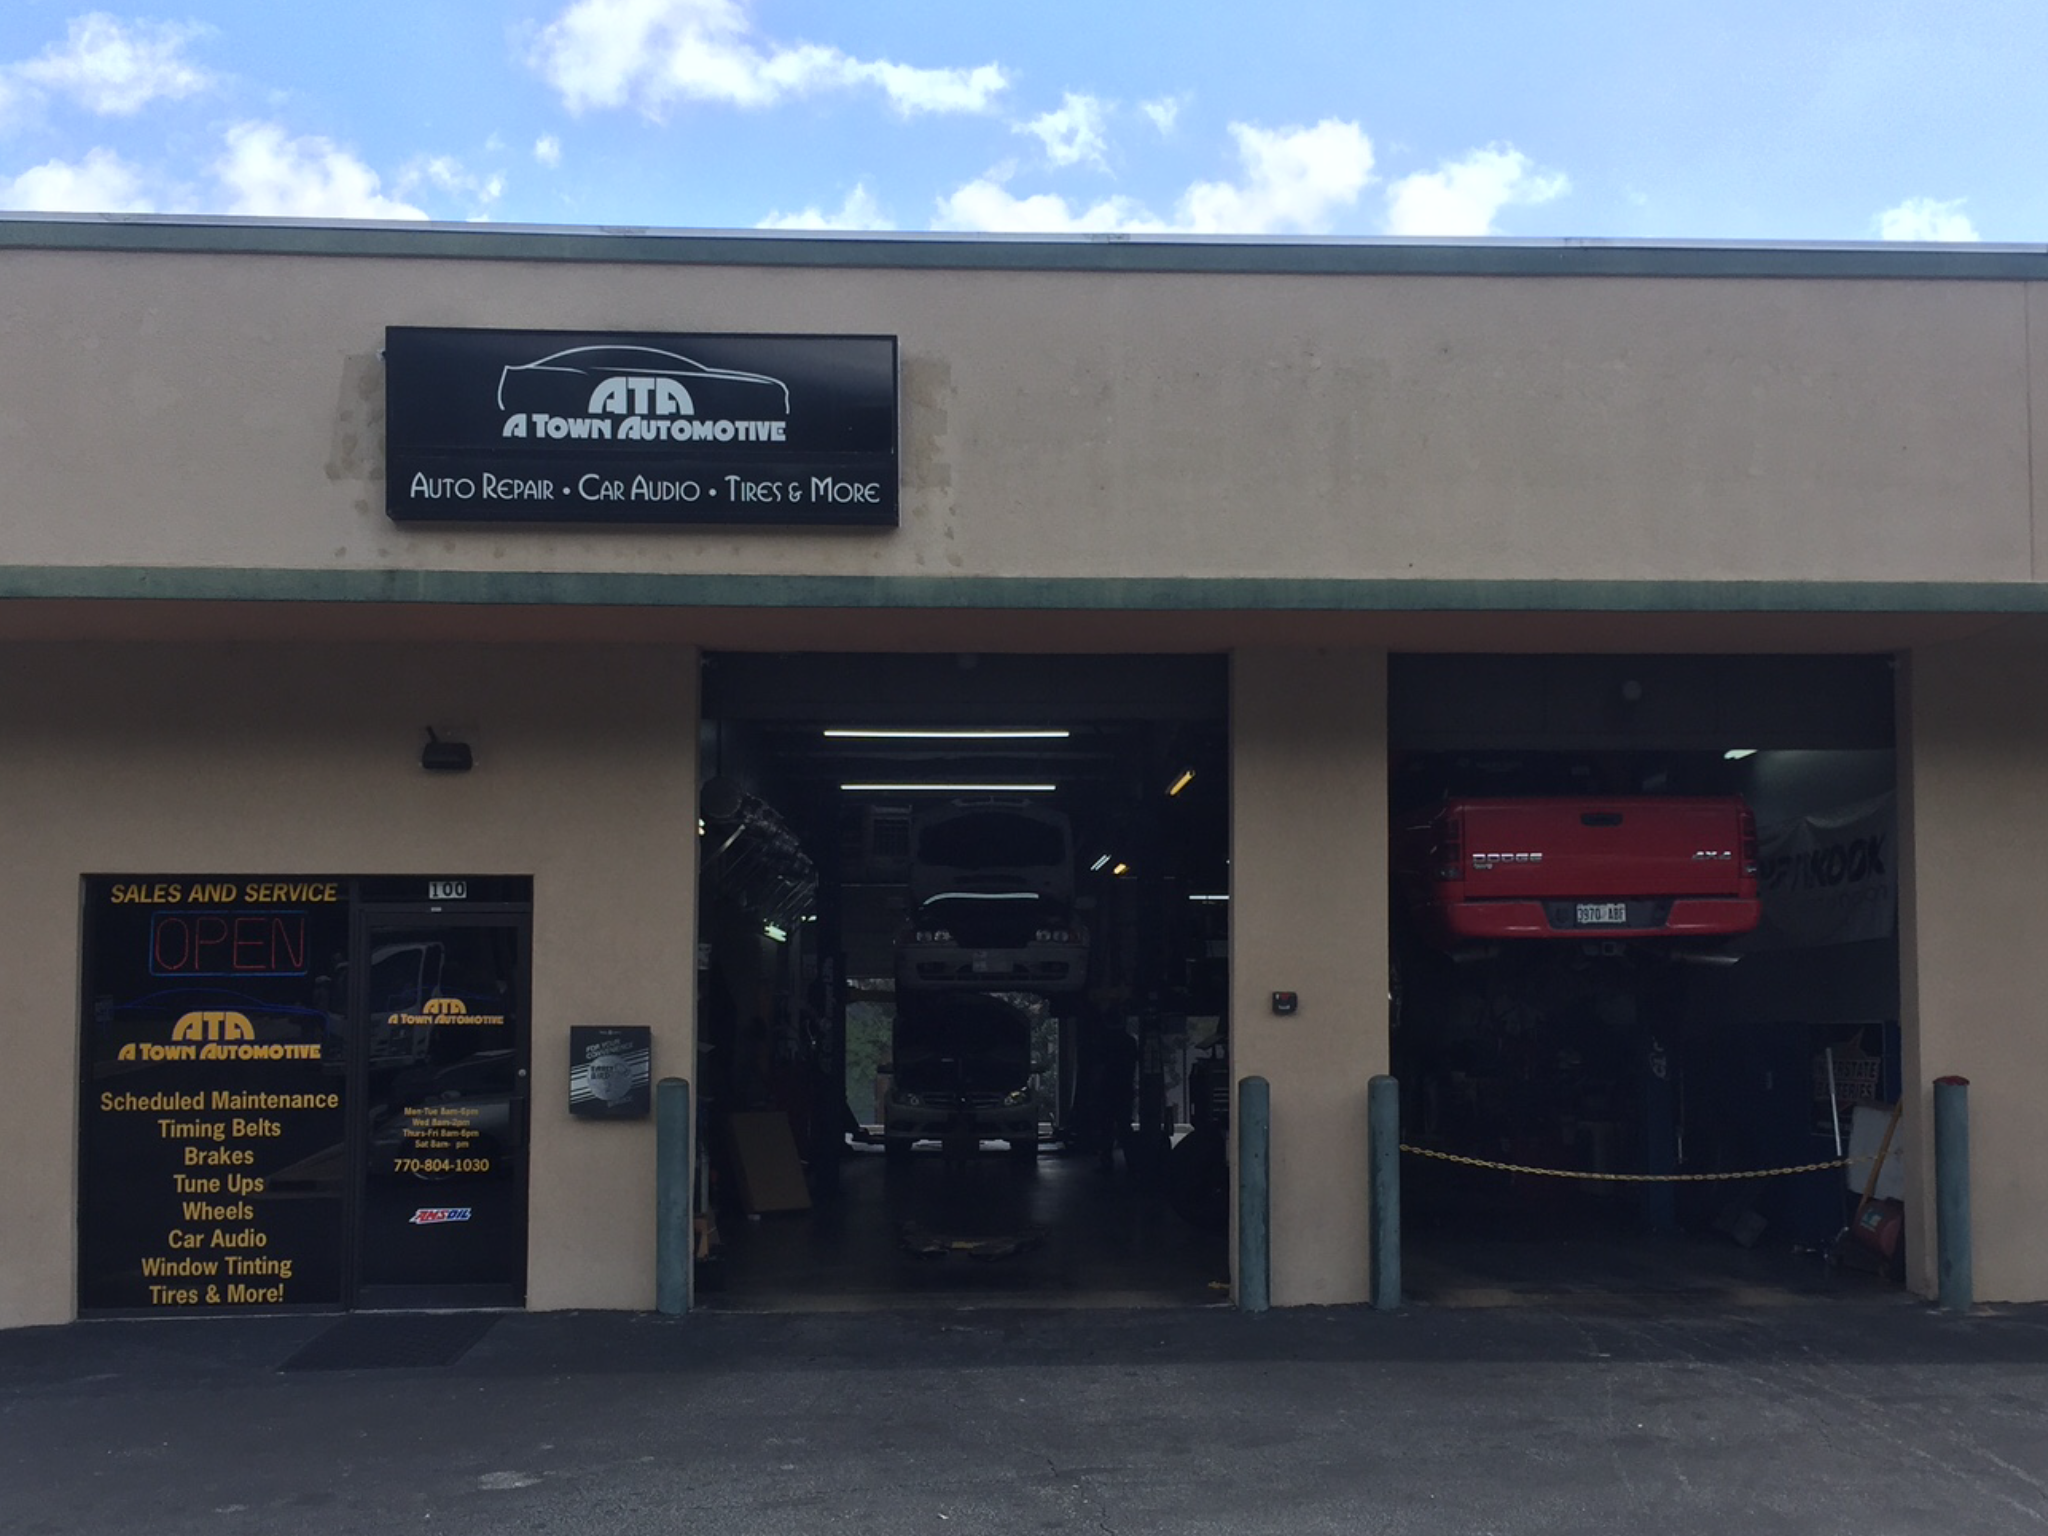 ATOWN AUTOMOTIVE